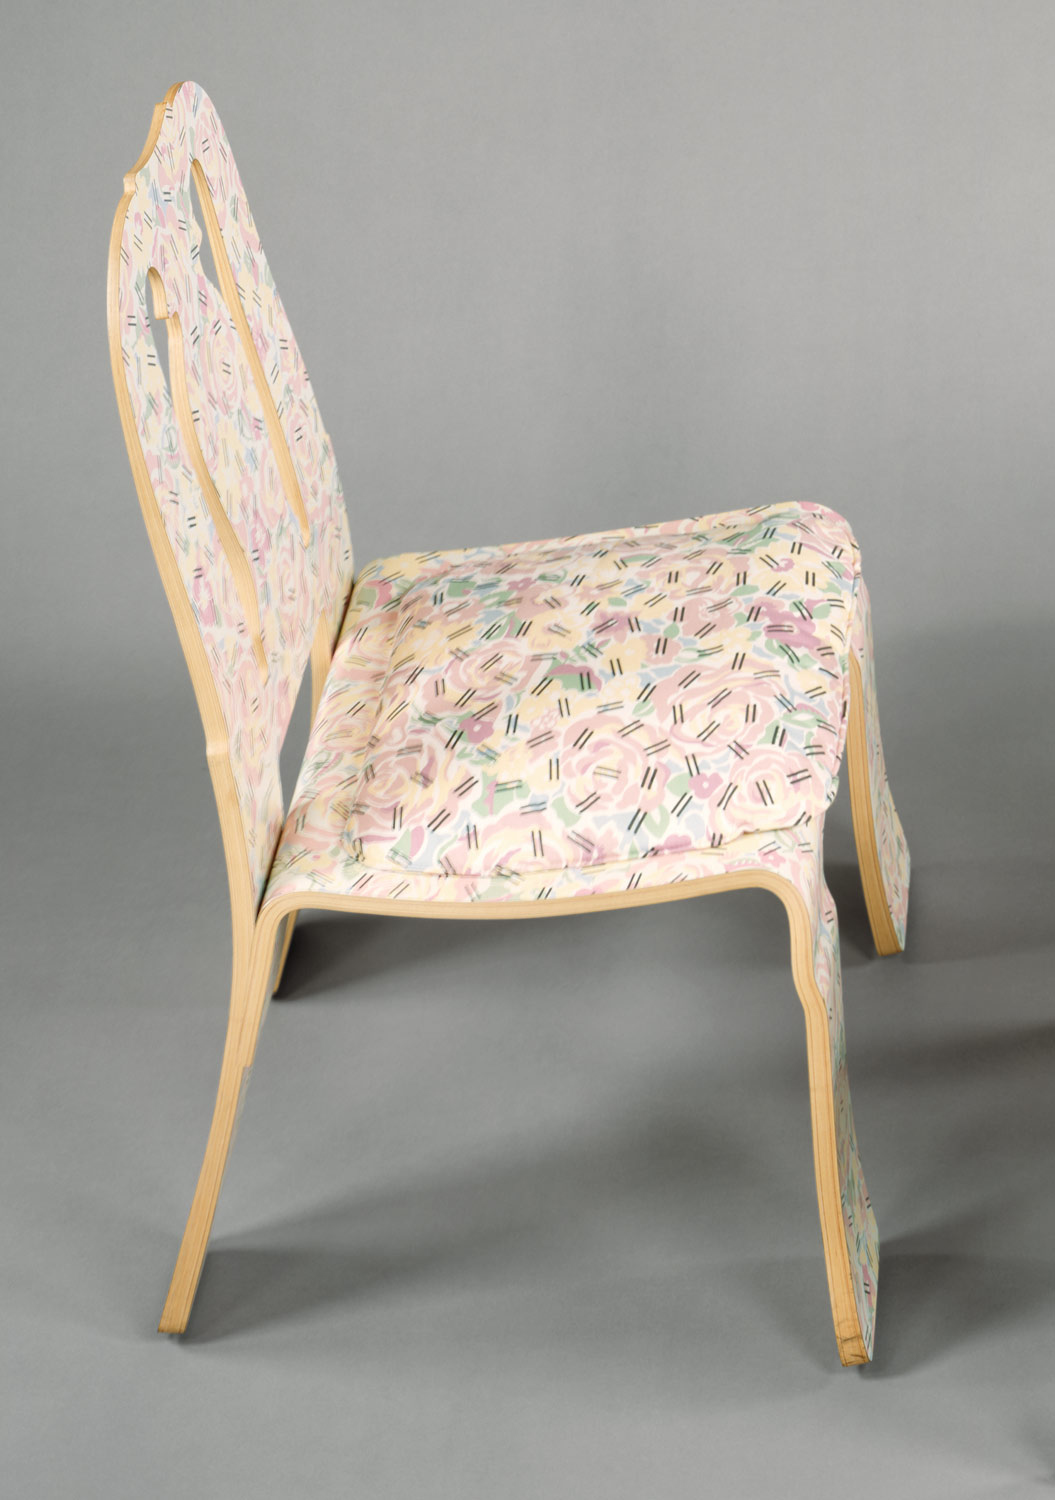 Queen Anne Side Chair Robert Venturi 1985 113 1 Work Of Art